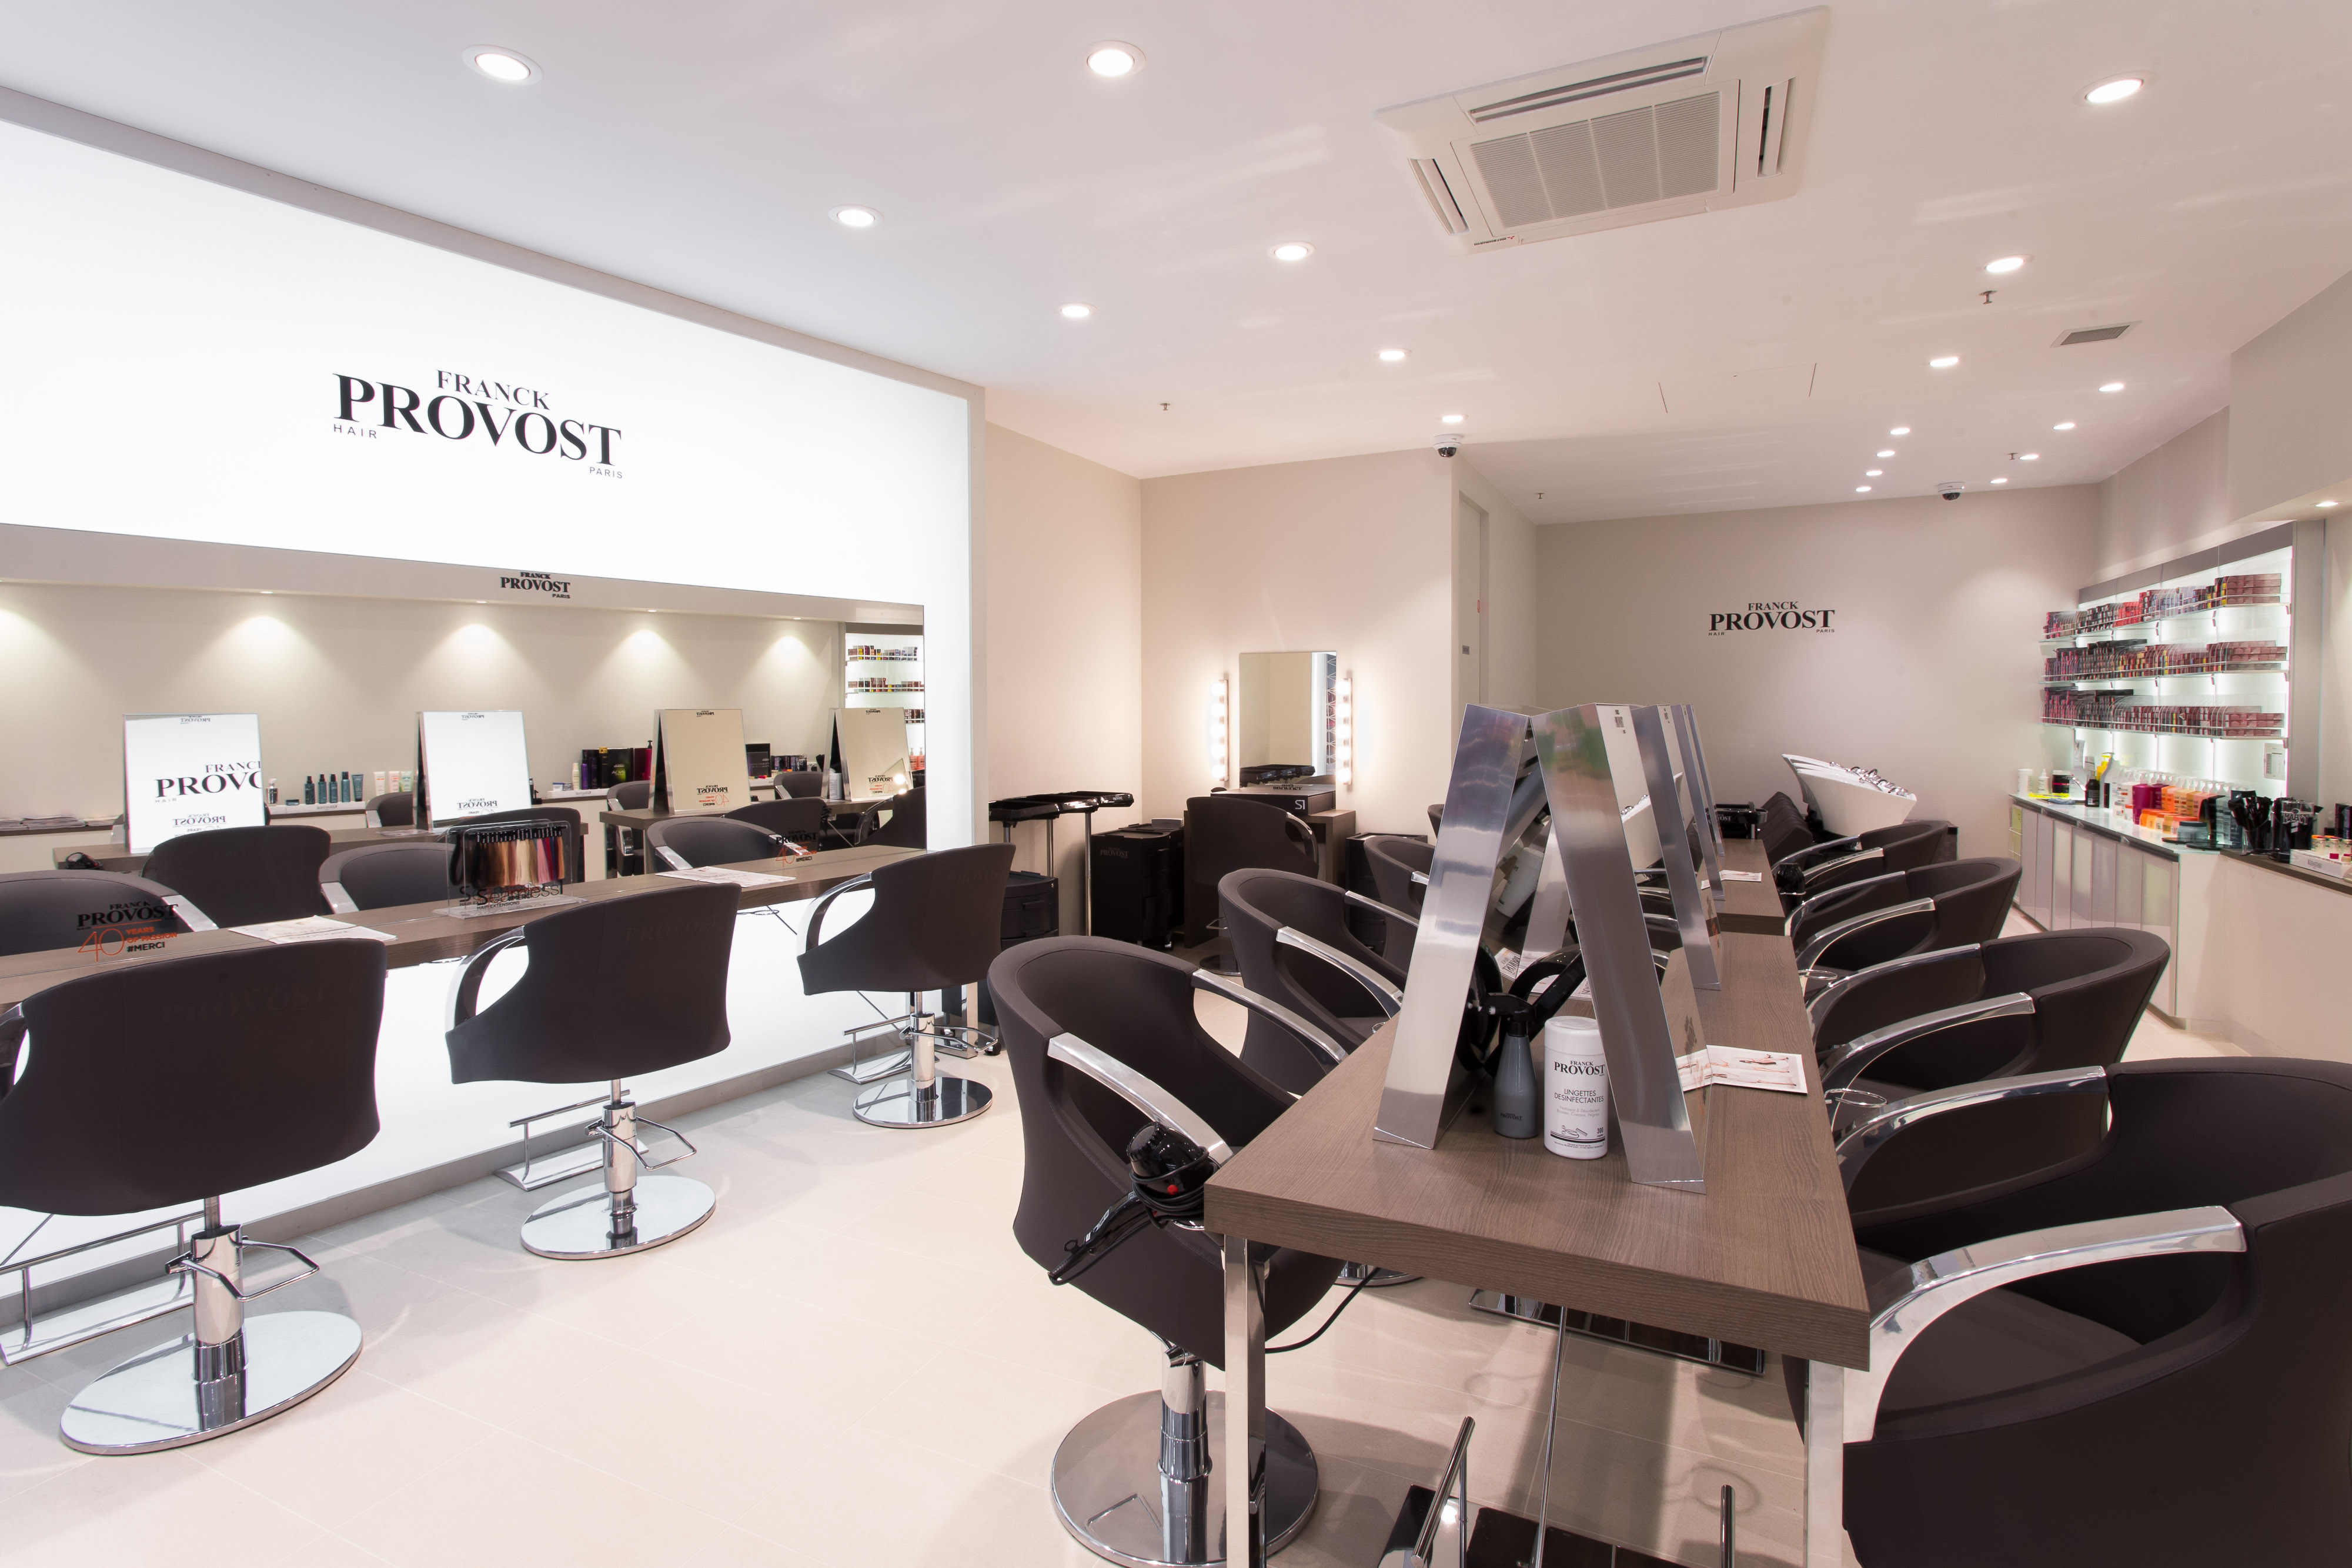 existing-hair-beauty-salon-franchise-business-opportunity-1